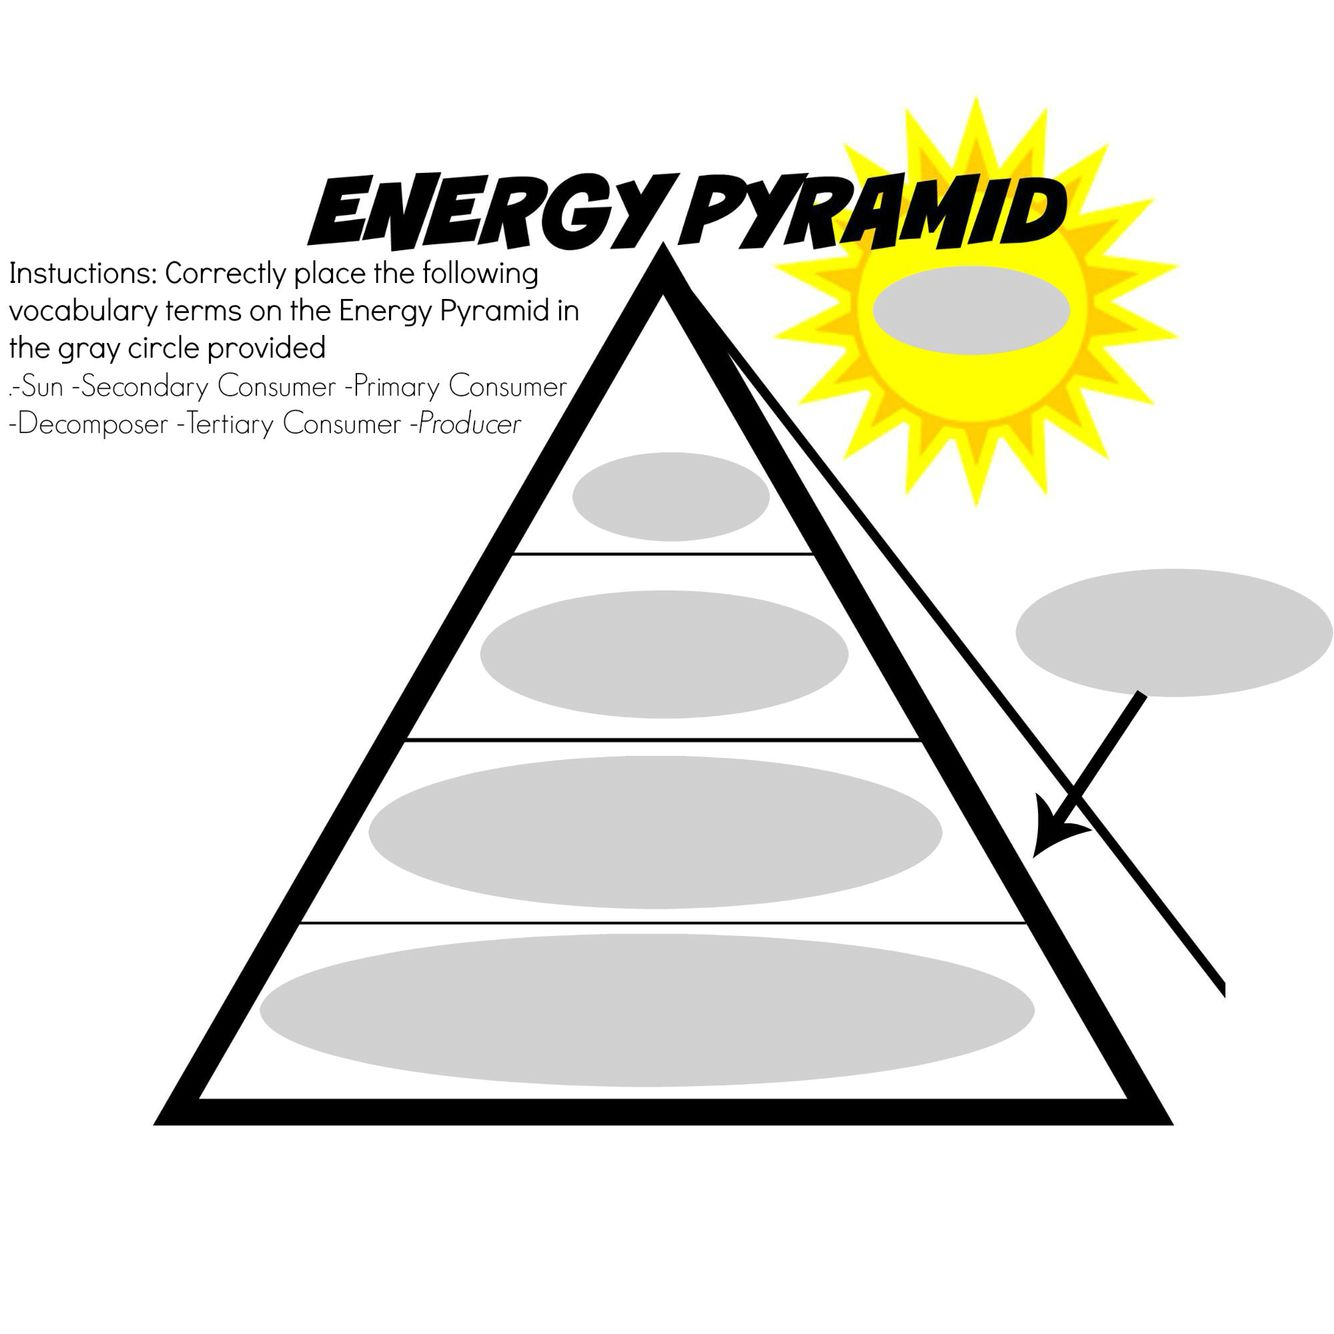 Blank current energy pyramid for students 3 5th grade learning